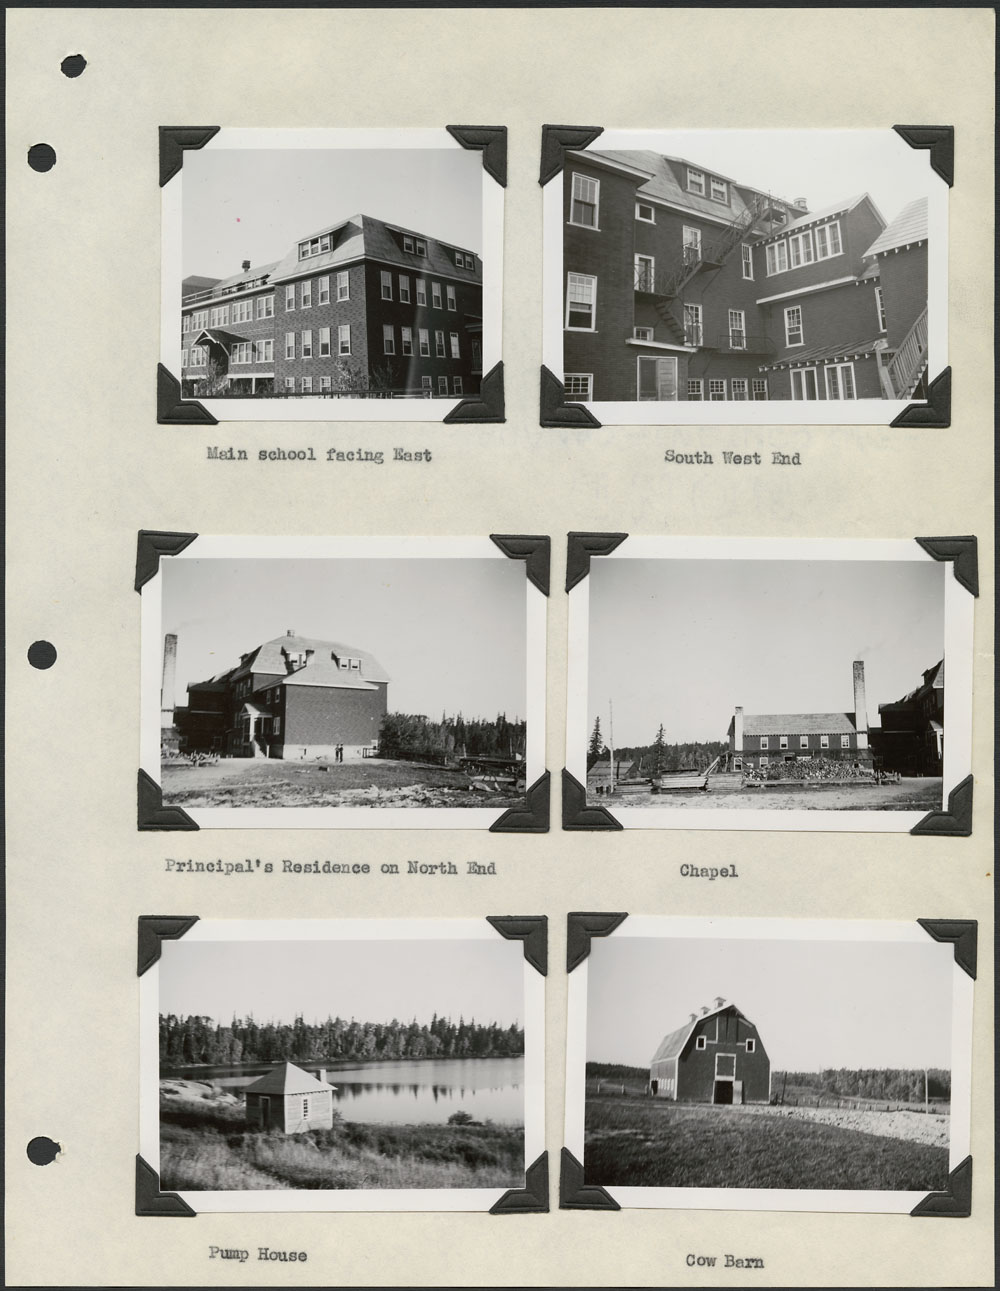 Pelican Lake Indian Residential School, photos of main school, principal's residence, chapel, pumphouse, and cow barn, Sioux Lookout, September 26, 1948